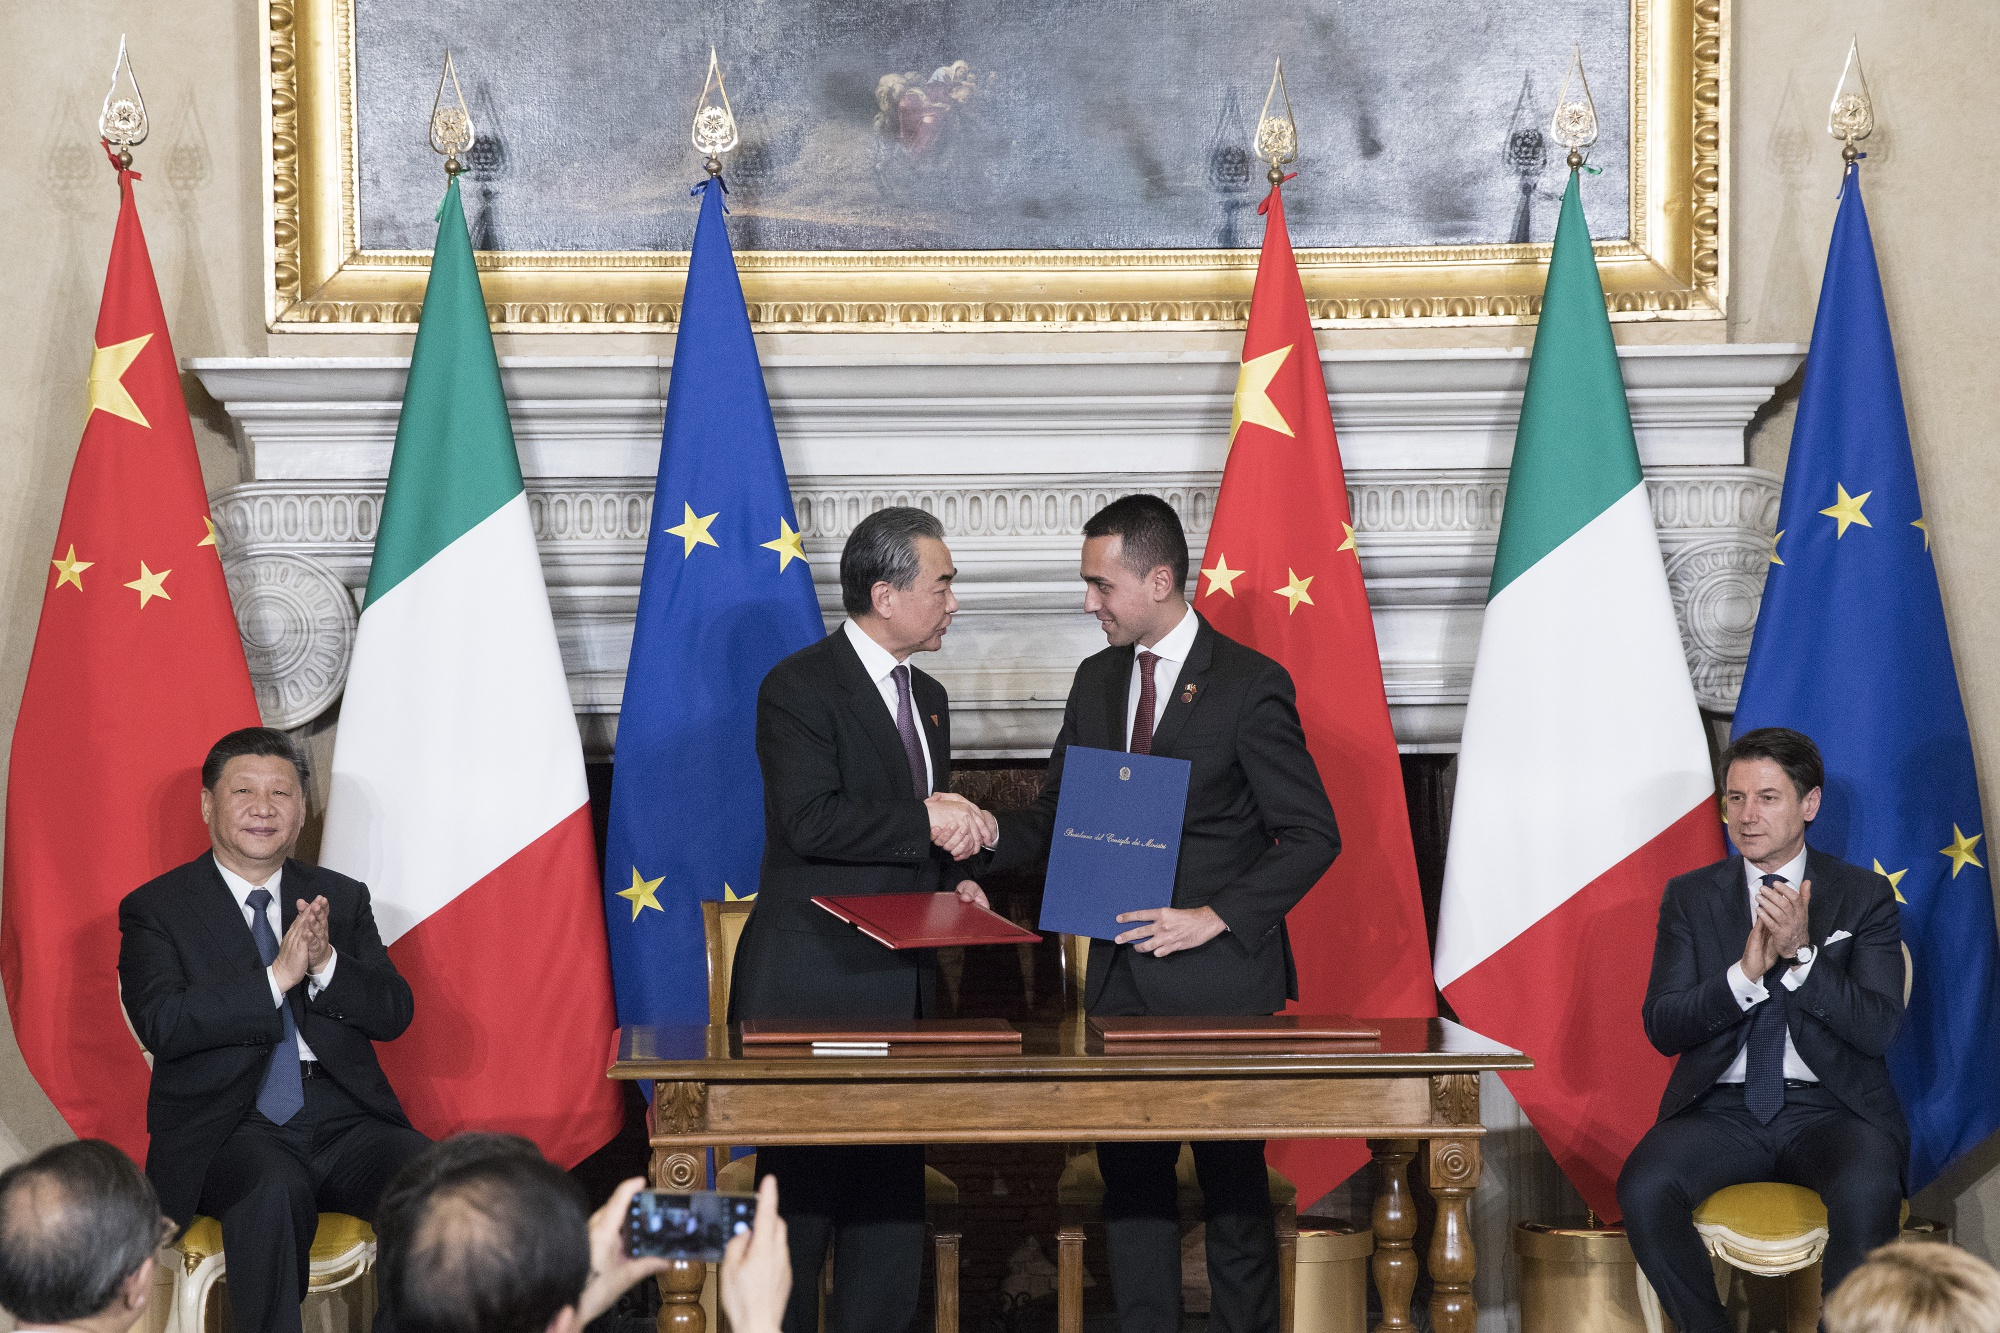 """From left, Xi Jinping, Wang Yi, Luigi Di Maio, and Giuseppe Conte, during the signing of a memorandum of understanding at Rome's Villa Madama, Saturday, March 23, 2019. Italy signed a memorandum of understanding with China on Saturday in support of Beijing's """"Belt and Road"""" initiative, which aims to weave a network of ports, bridges and power plants linking China with Africa, Europe and beyond. Is this the cause of COVID-19? © Alessia Pierdomenico/Bloomberg"""